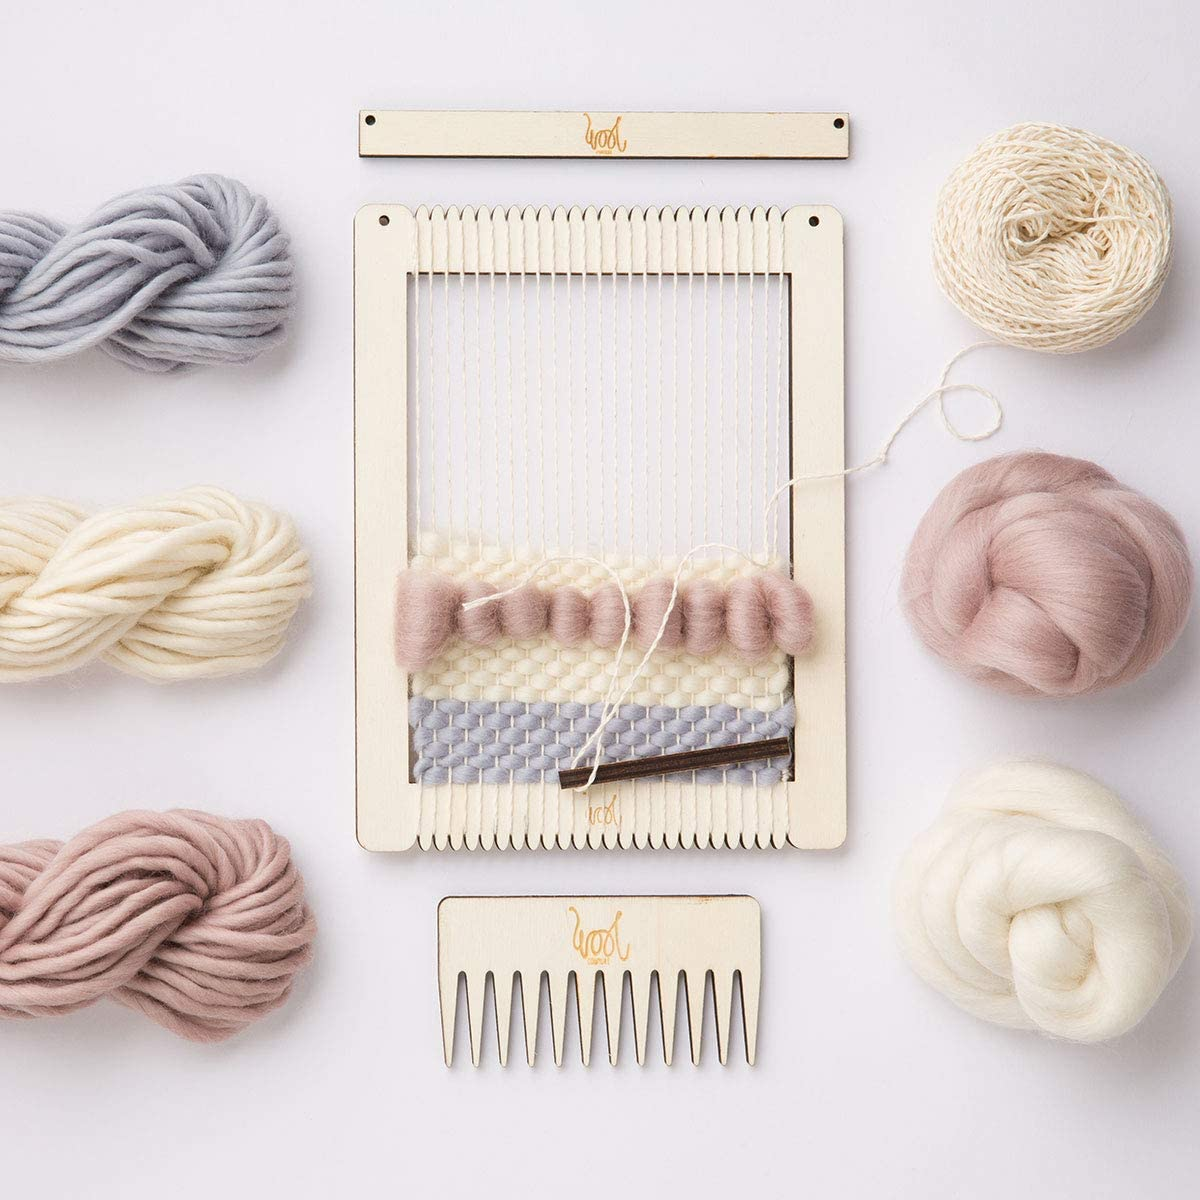 70S Chic Wool Couture Small Rectangular Weaving Loom Kit